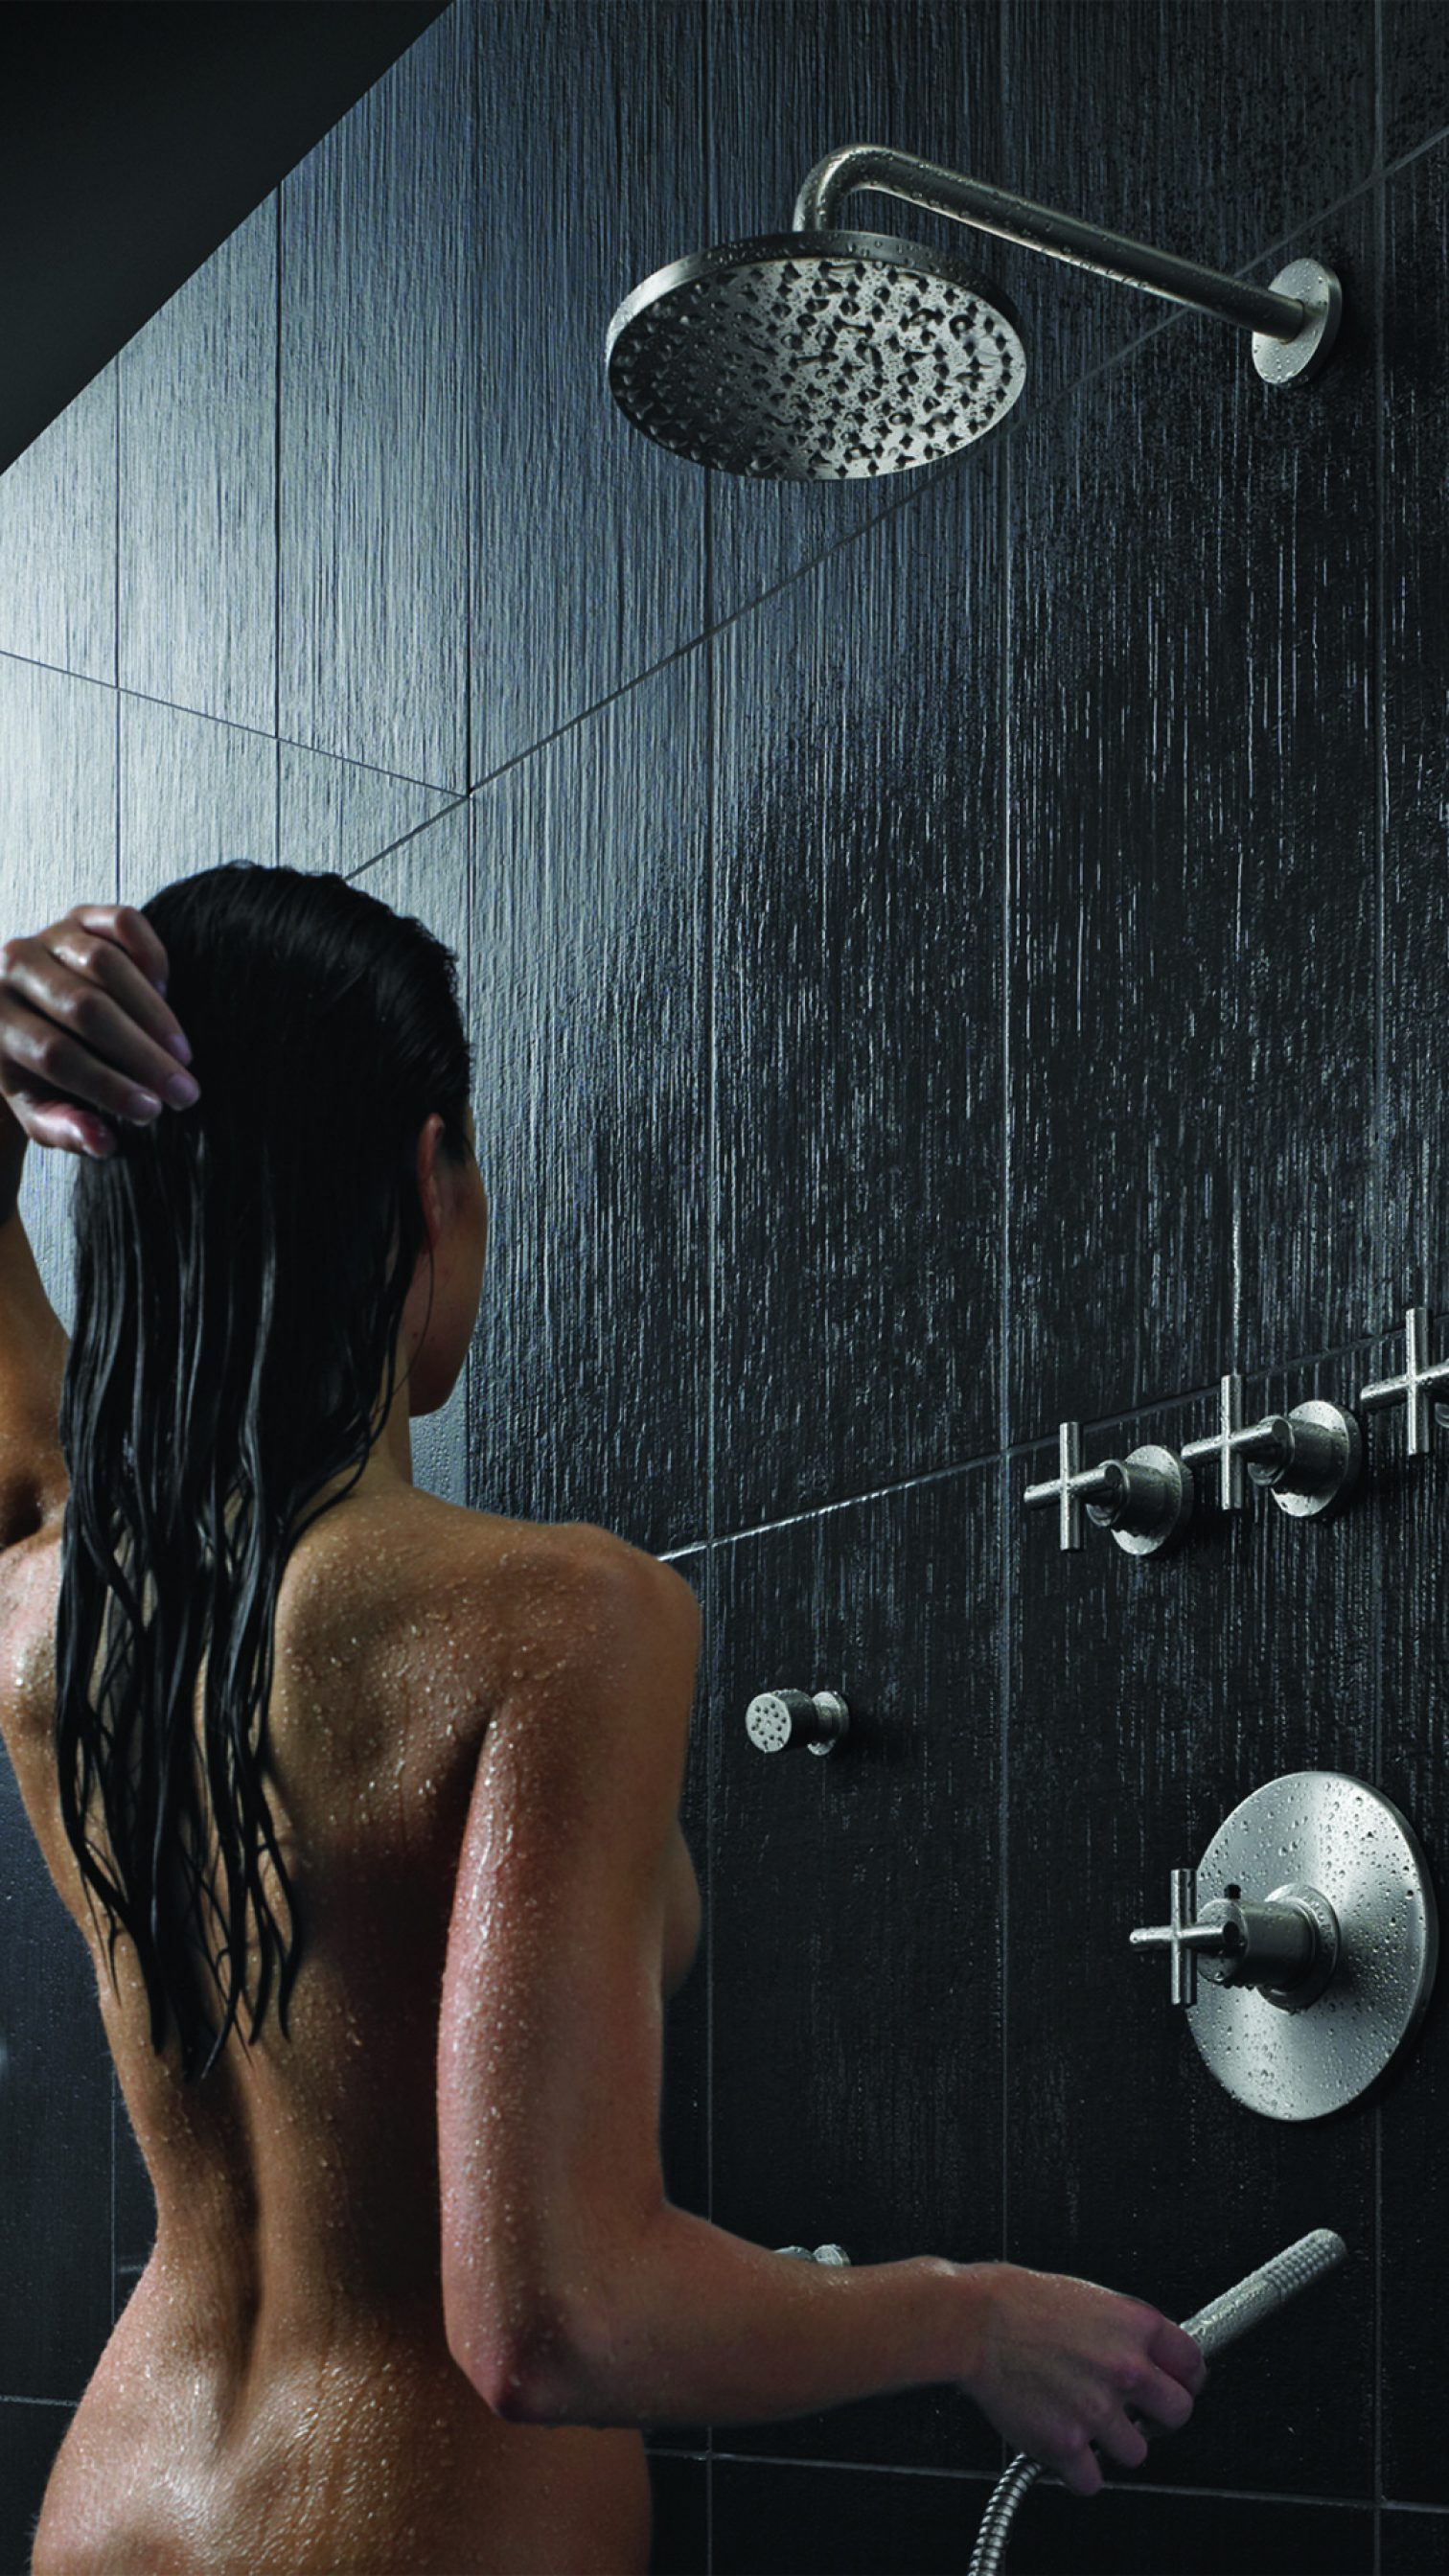 Woman in StyleTherm Shower